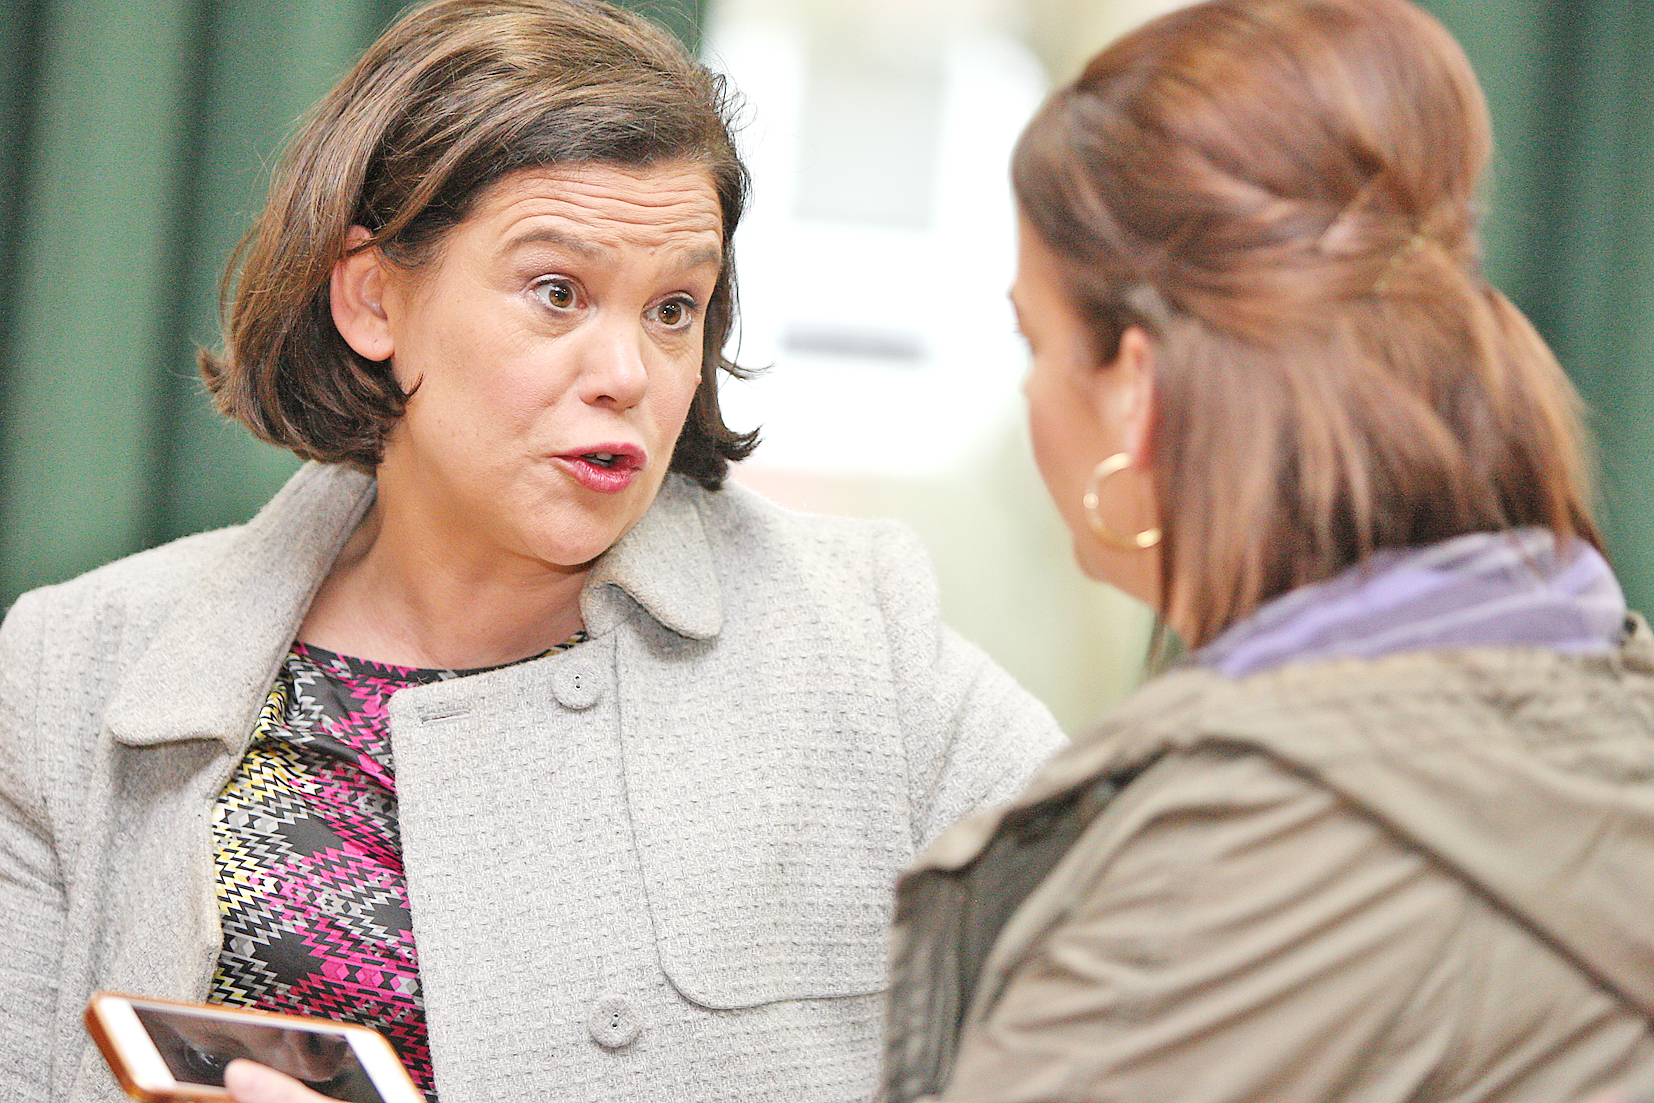 Mary lou mcdonald 1 11